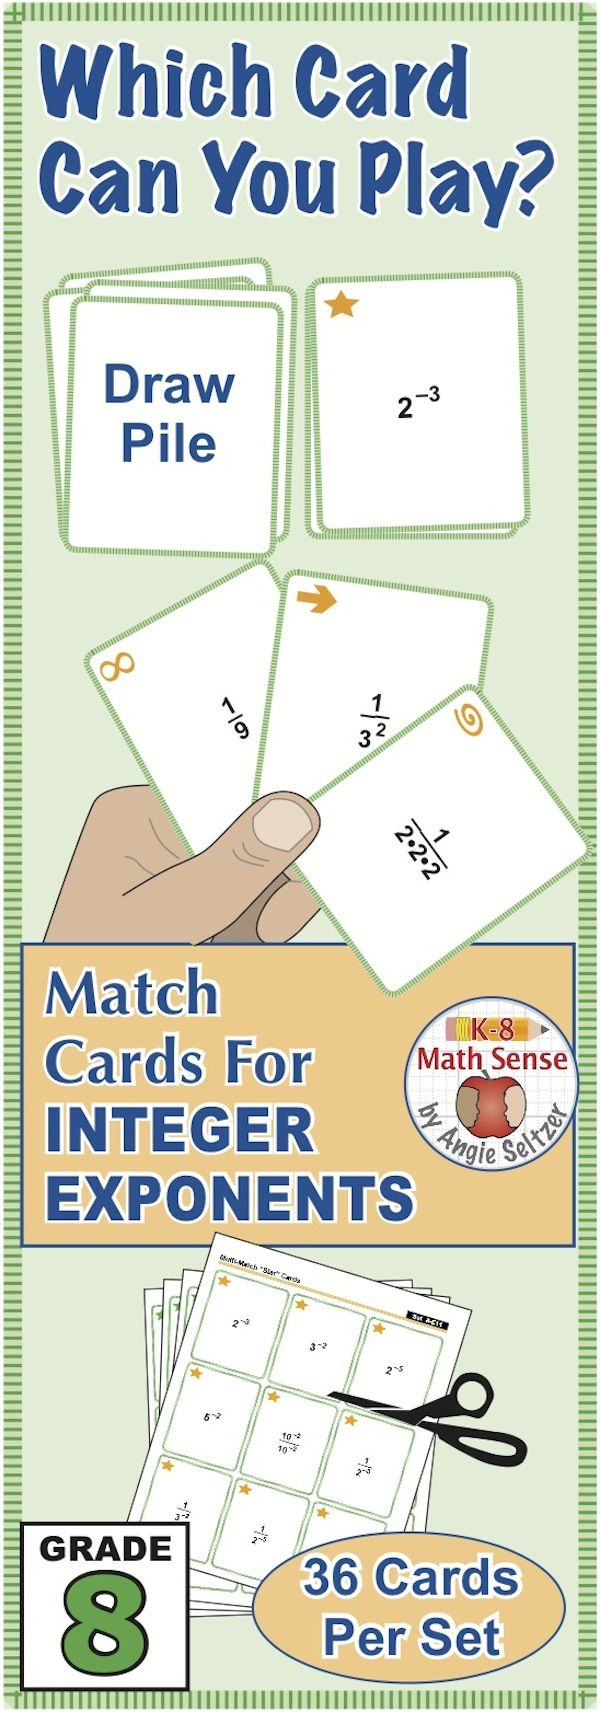 This FREE set of printable Multi-Match game cards helps students simplify expressions with negative integer exponents. Just print on five sheets of paper and have students cut the cards. Choose from four fun, familiar games for 1-4 players. Also see the bundle of Grade 8 games. ~by Angie Seltzer